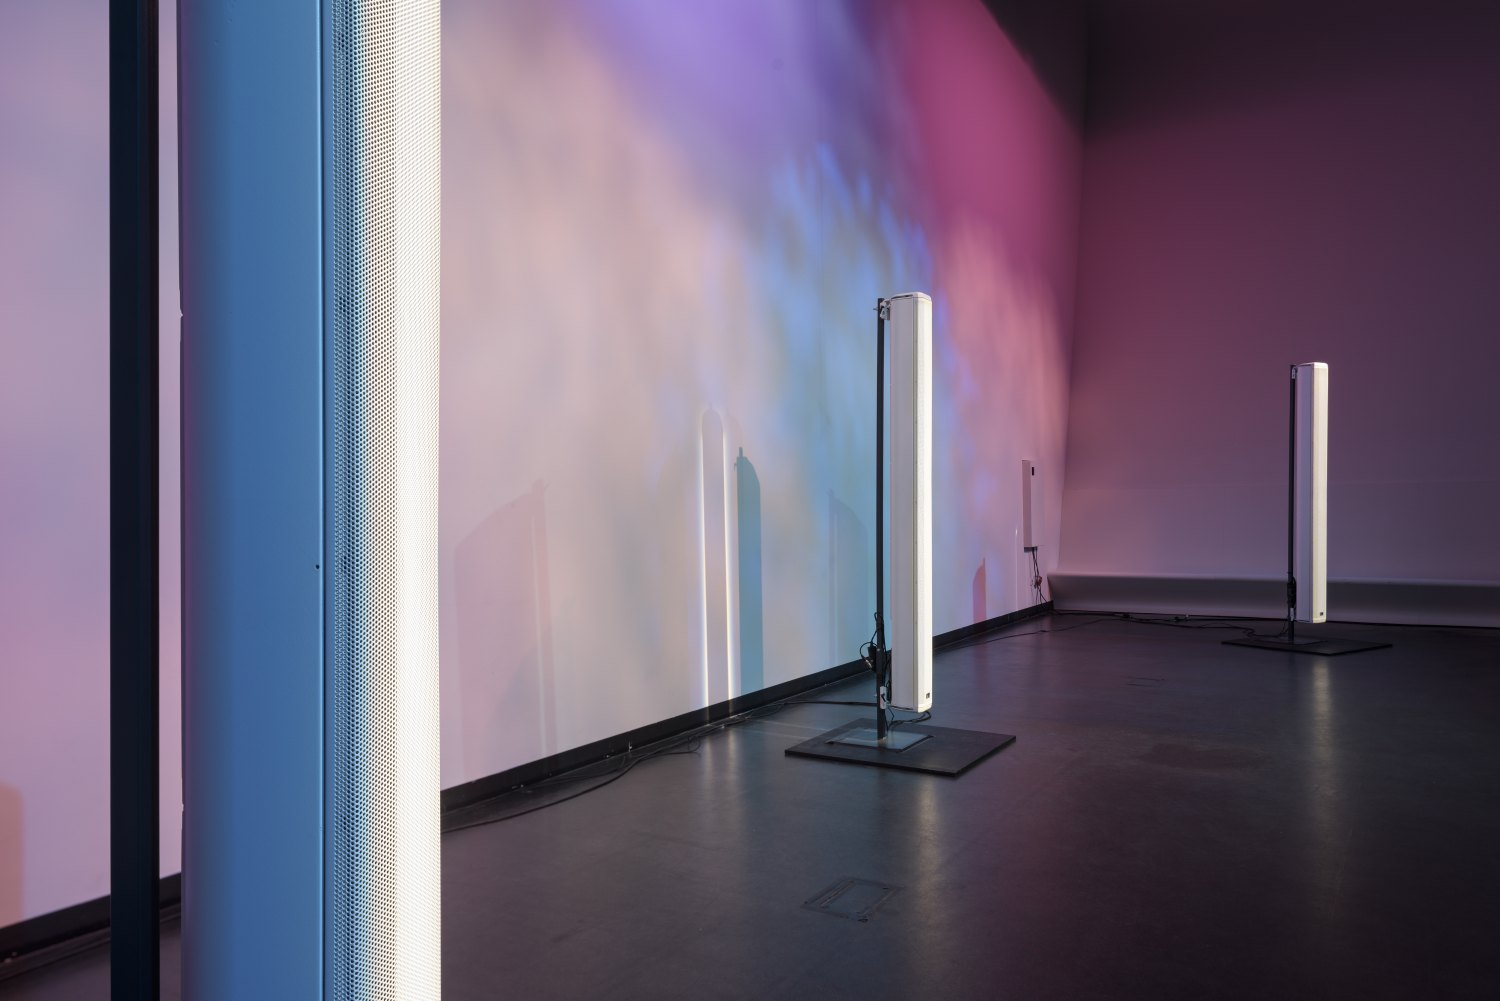 Florian Hecker, A Script for Machine Synthesis Installation view, Stedelijk Museum, Amsterdam 2015